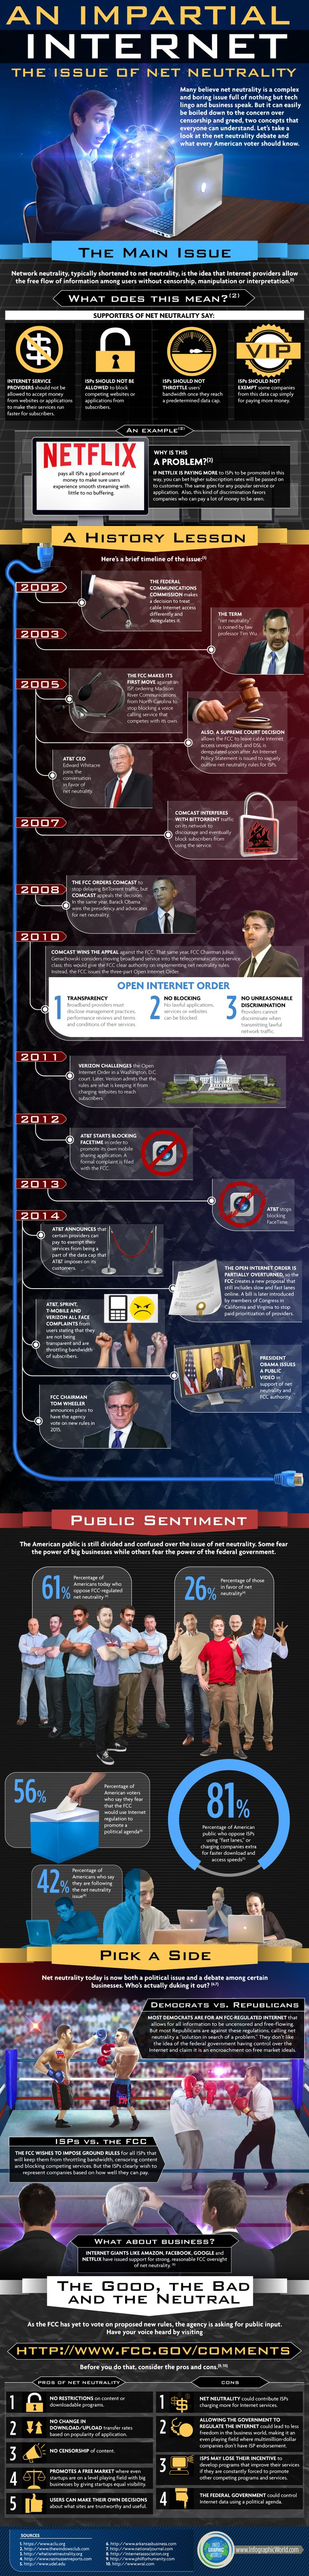 An Impartial Internet: The Issue of Net Neutrality #infographic #Internet #NetNeutrality